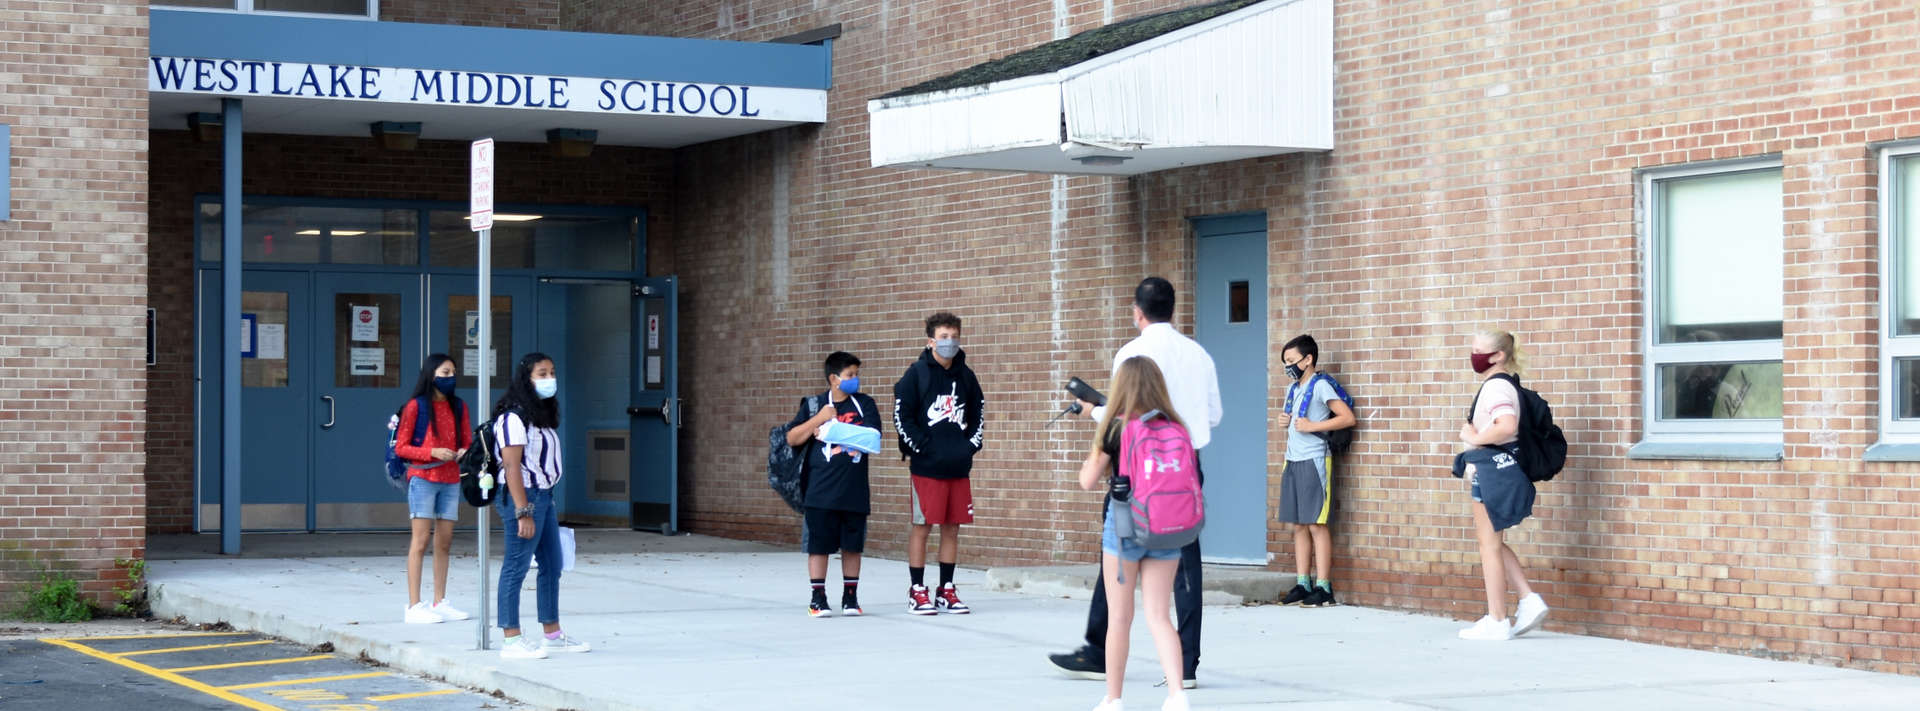 group of kids walks towards school entrance with adult